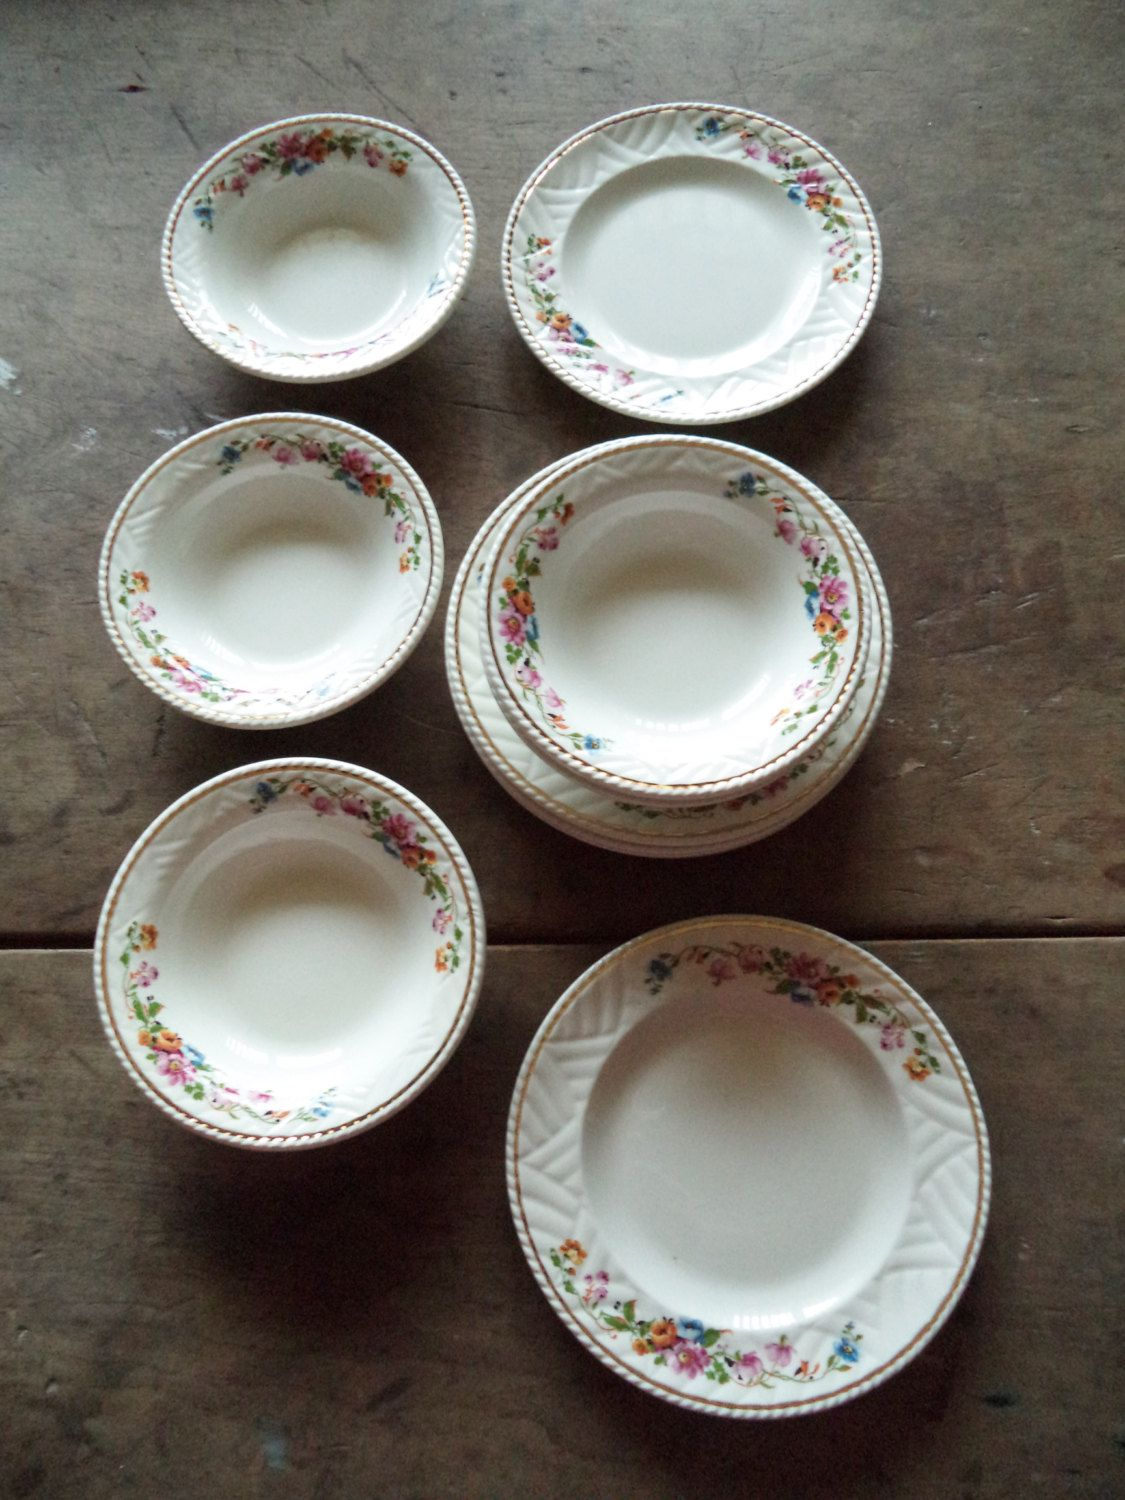 Vintage Bowls Plates Dundee Ware China Home U0026 Living Kitchen Dining Serving  Entertaining Bowl Plate Flowers